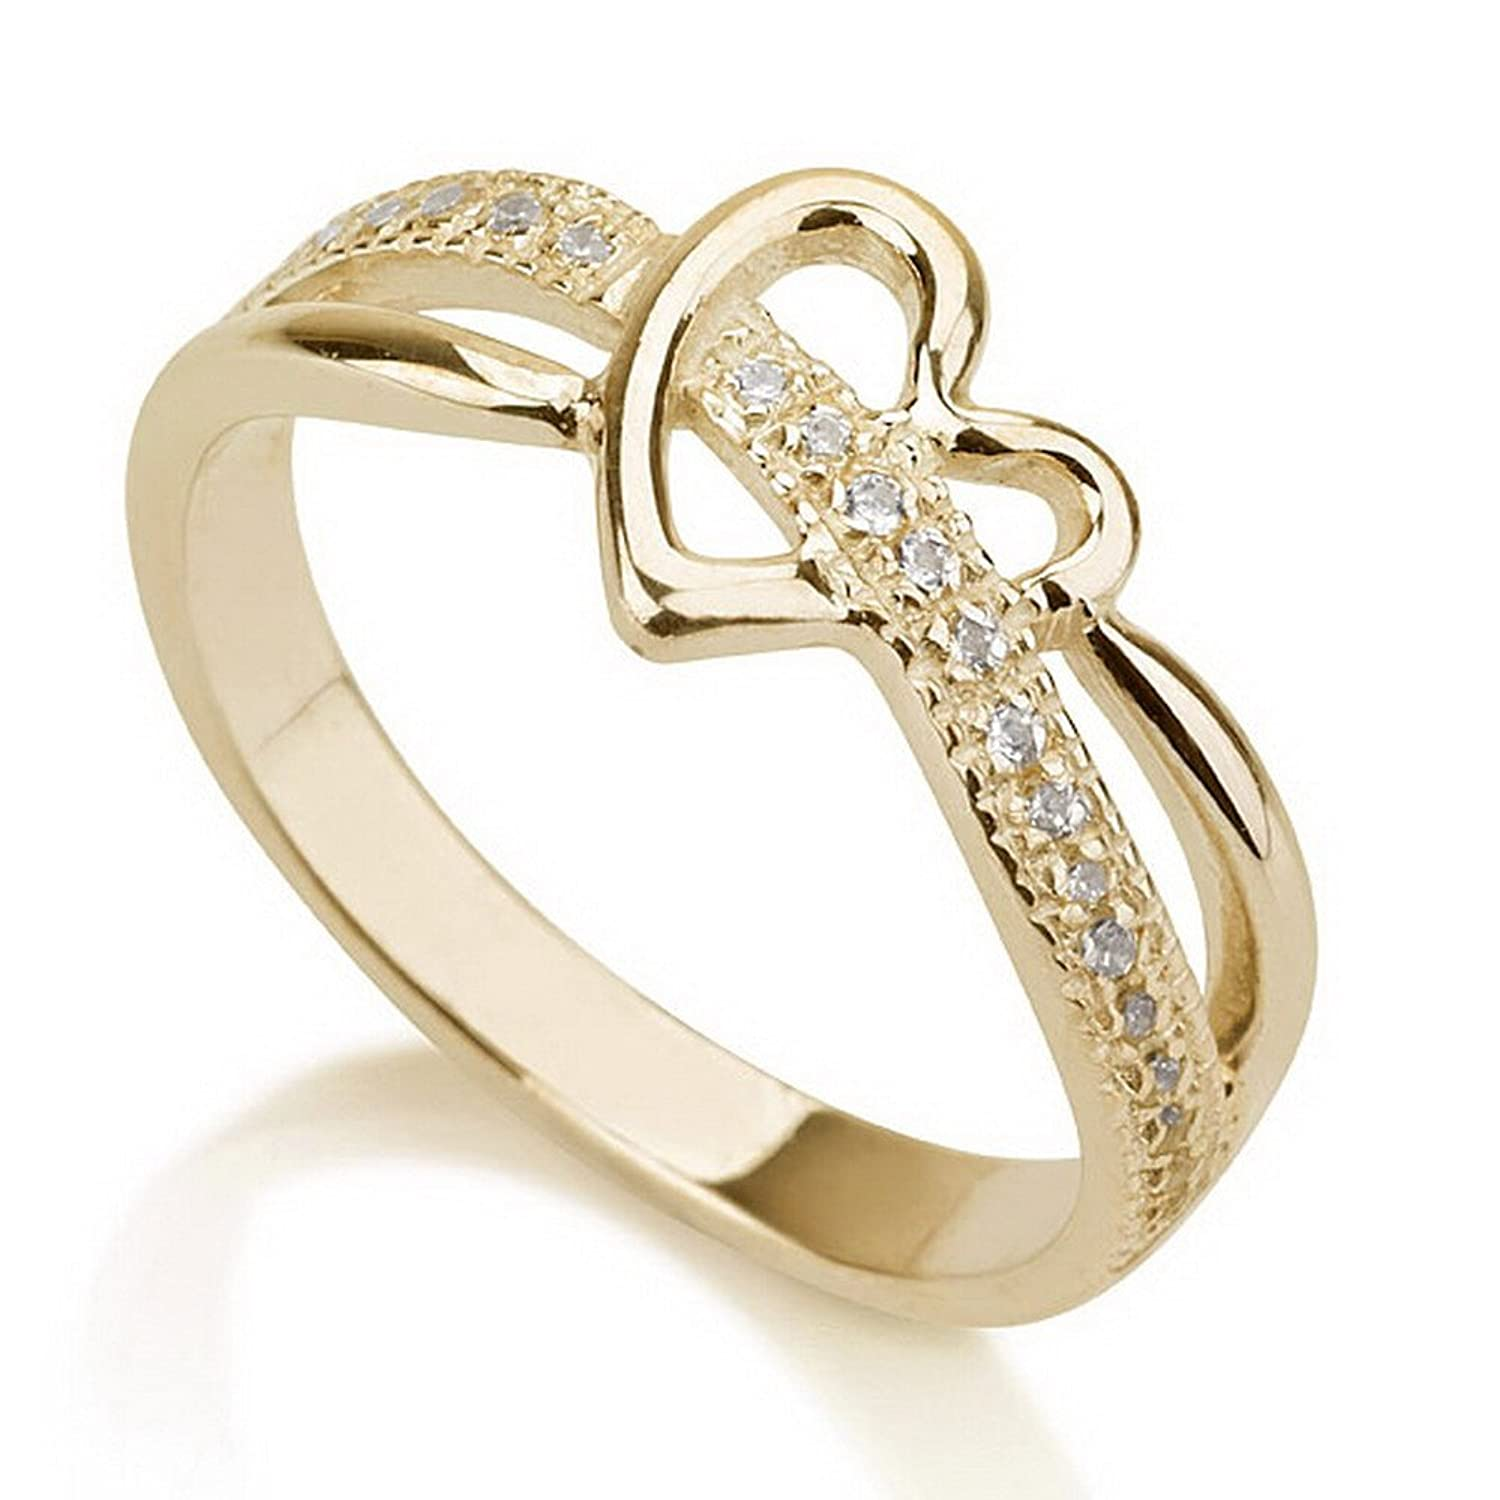 Amazon.com: Gold Plated Heart Ring, Love Ring Heart, Promise Ring ...